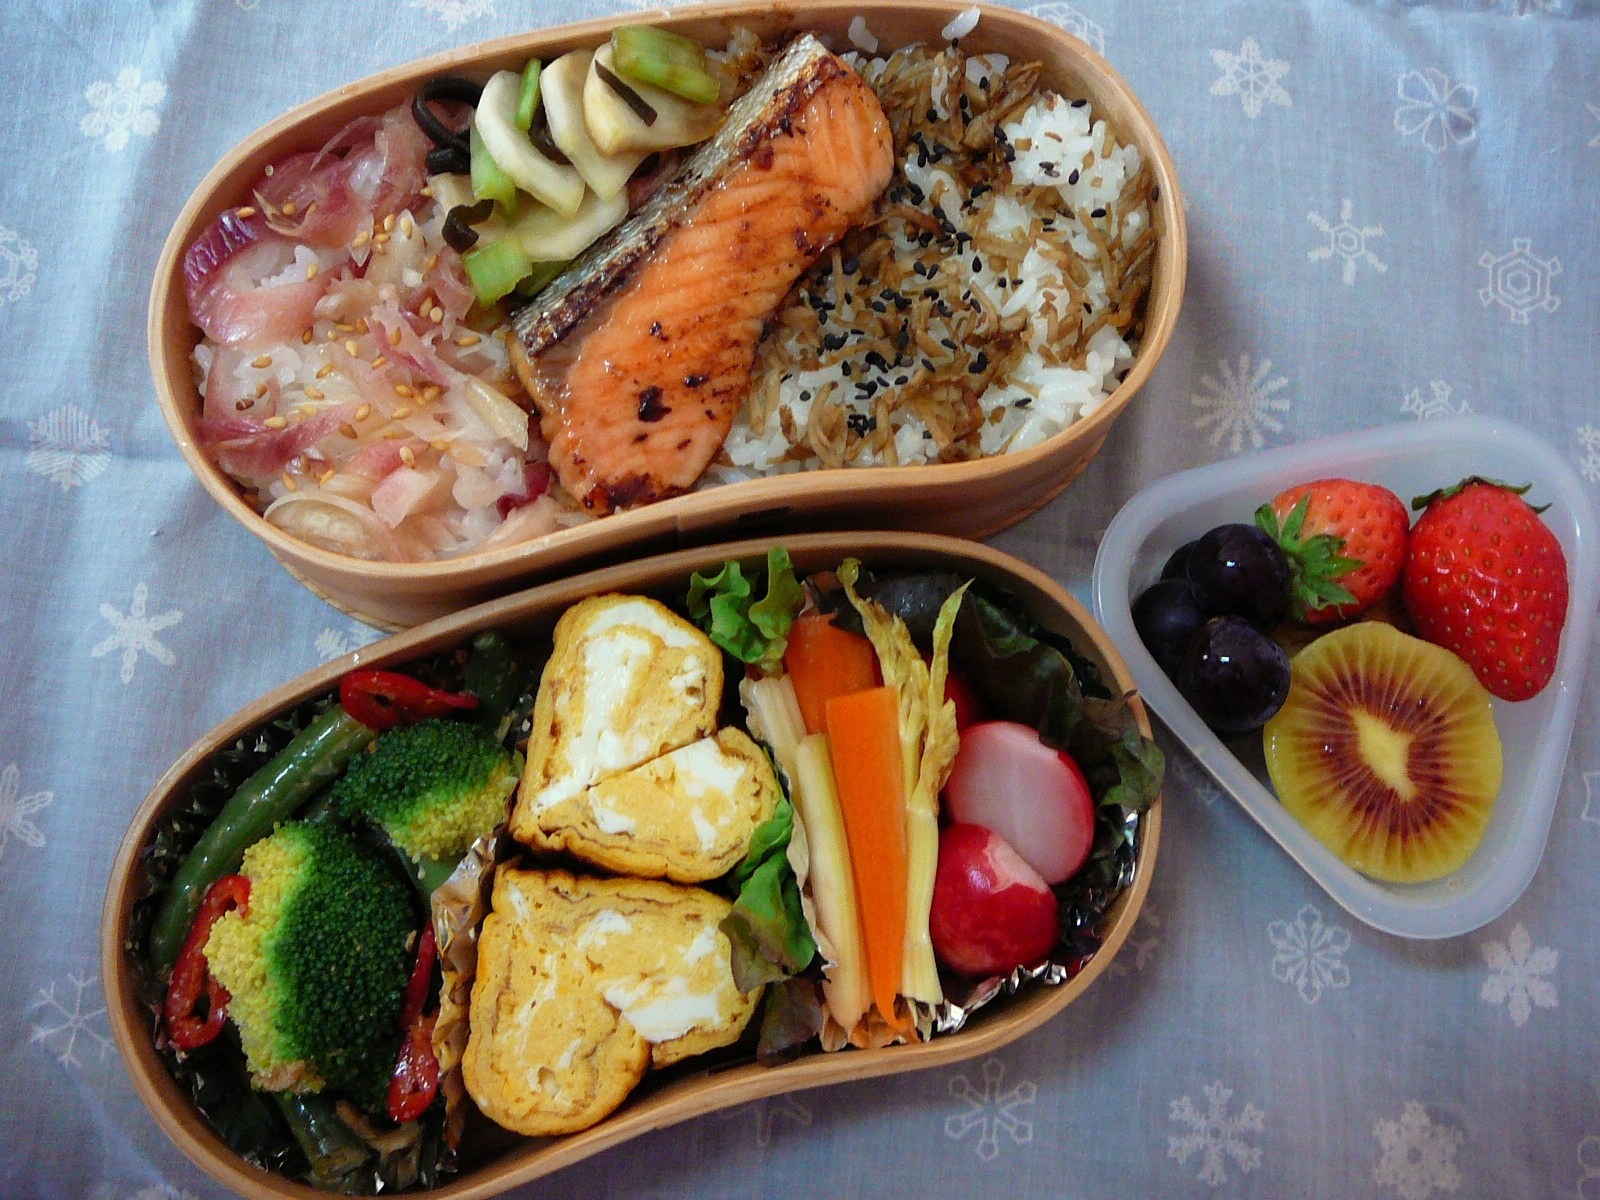 today s lunch box bento 10 83 a tale of two sak s bento shizuoka gourmet. Black Bedroom Furniture Sets. Home Design Ideas